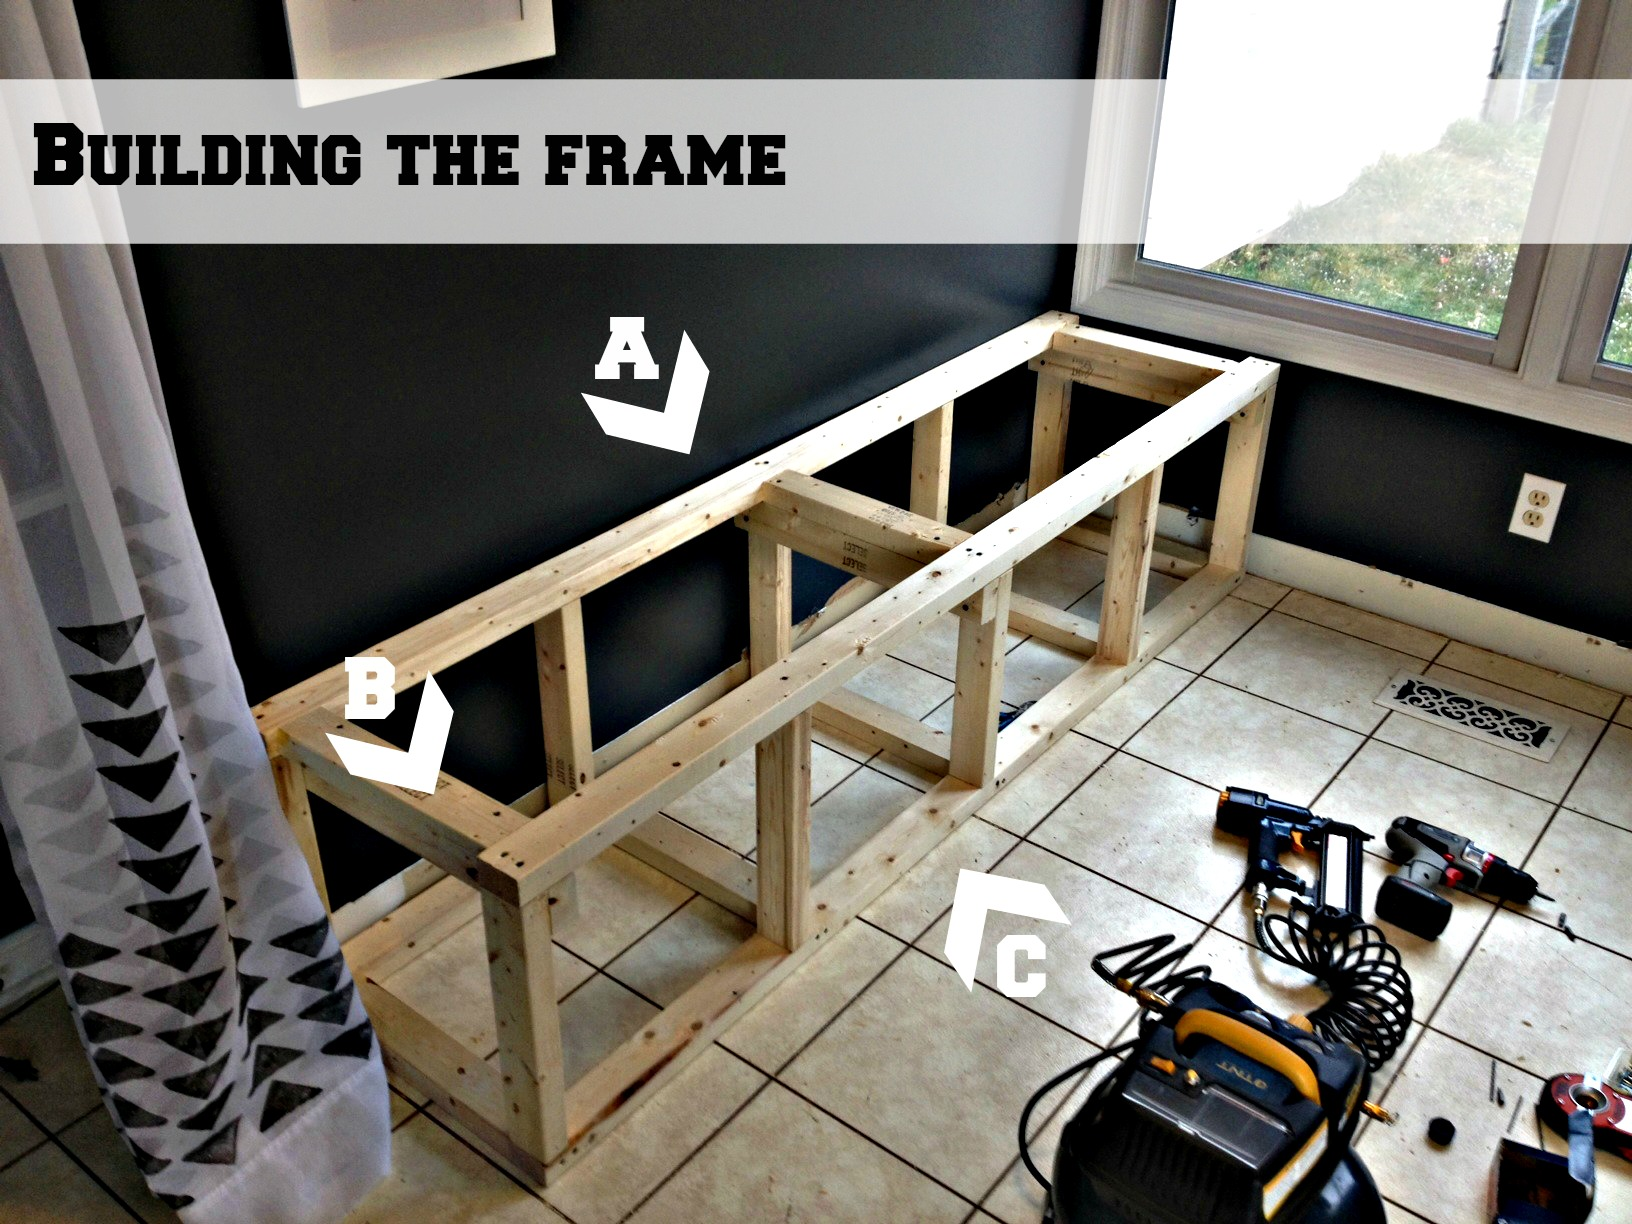 New build a corner banquette bench frame Pinterior Designer featured on Remodelaholic